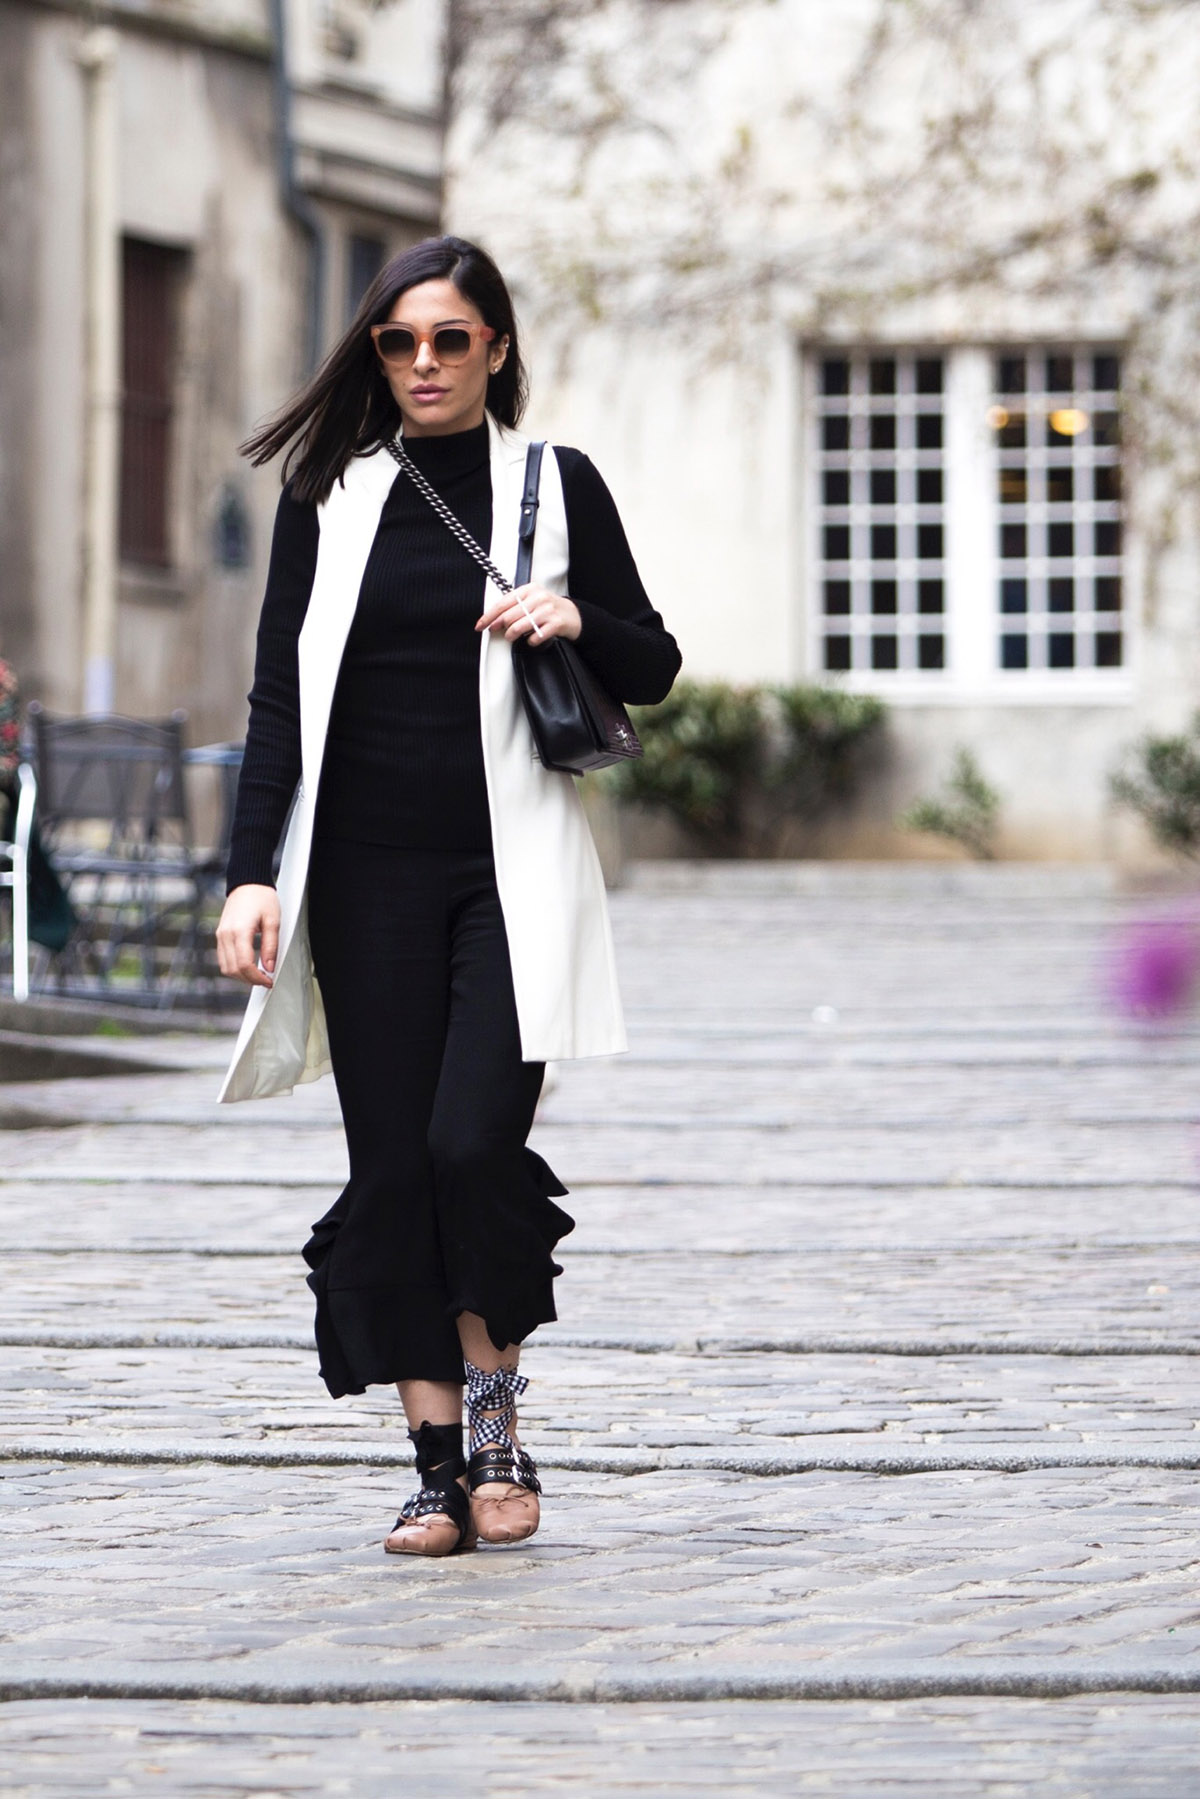 black and white casual chic street style by Stella Asteria - Fashion & Lifestyle Blogger